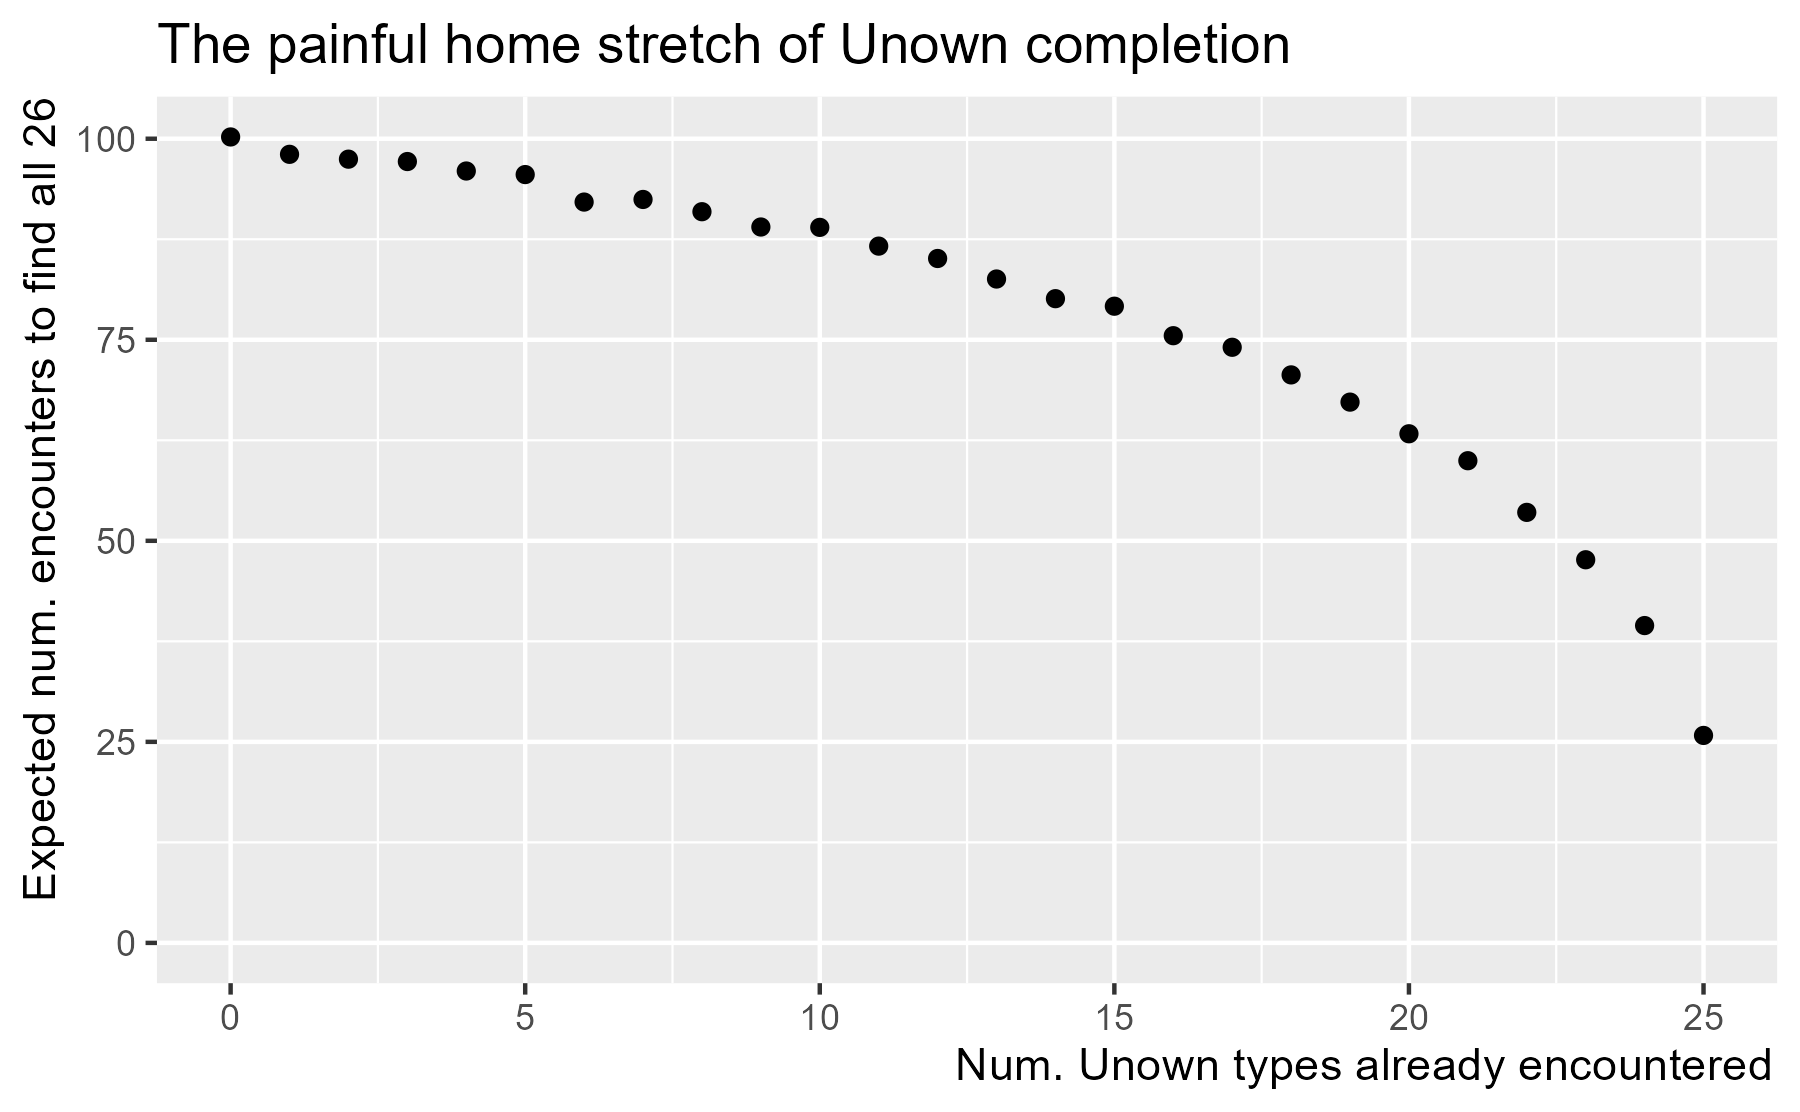 Simulating Unown encounter rates in Pokémon Go Higher Order